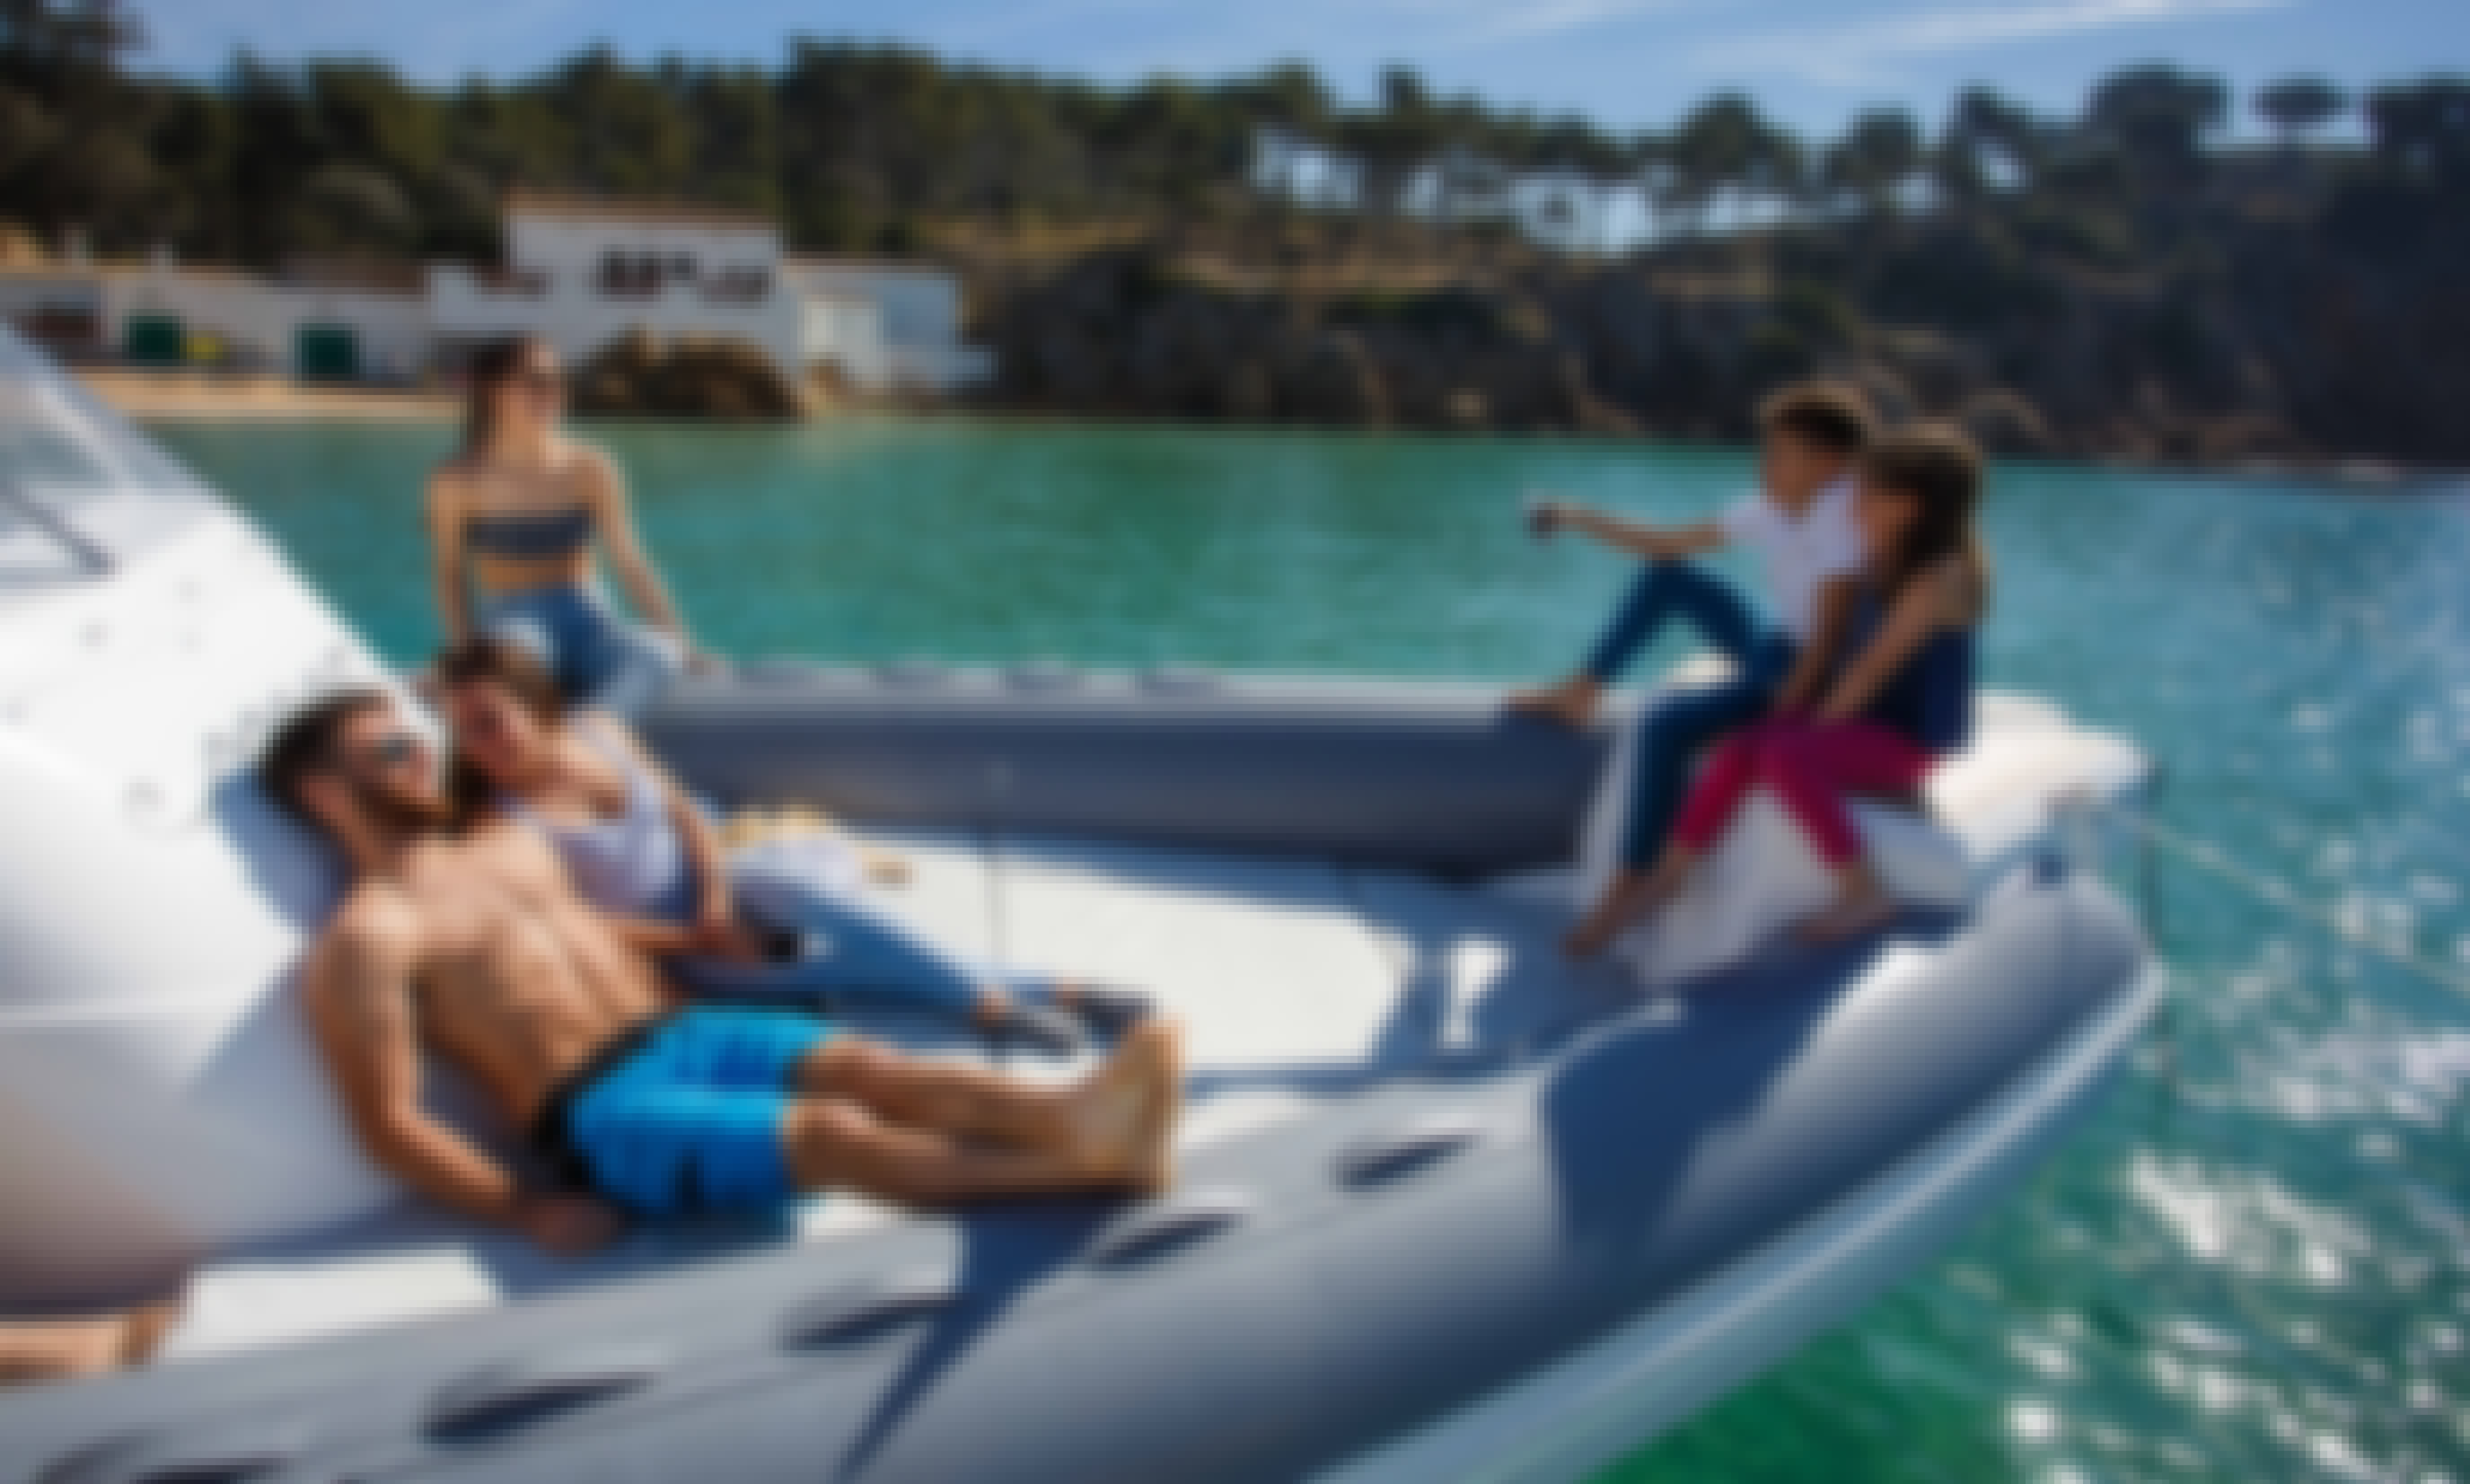 Tiger Marine RIB 900 Rental for Up to 11 People in Palamós, Spain